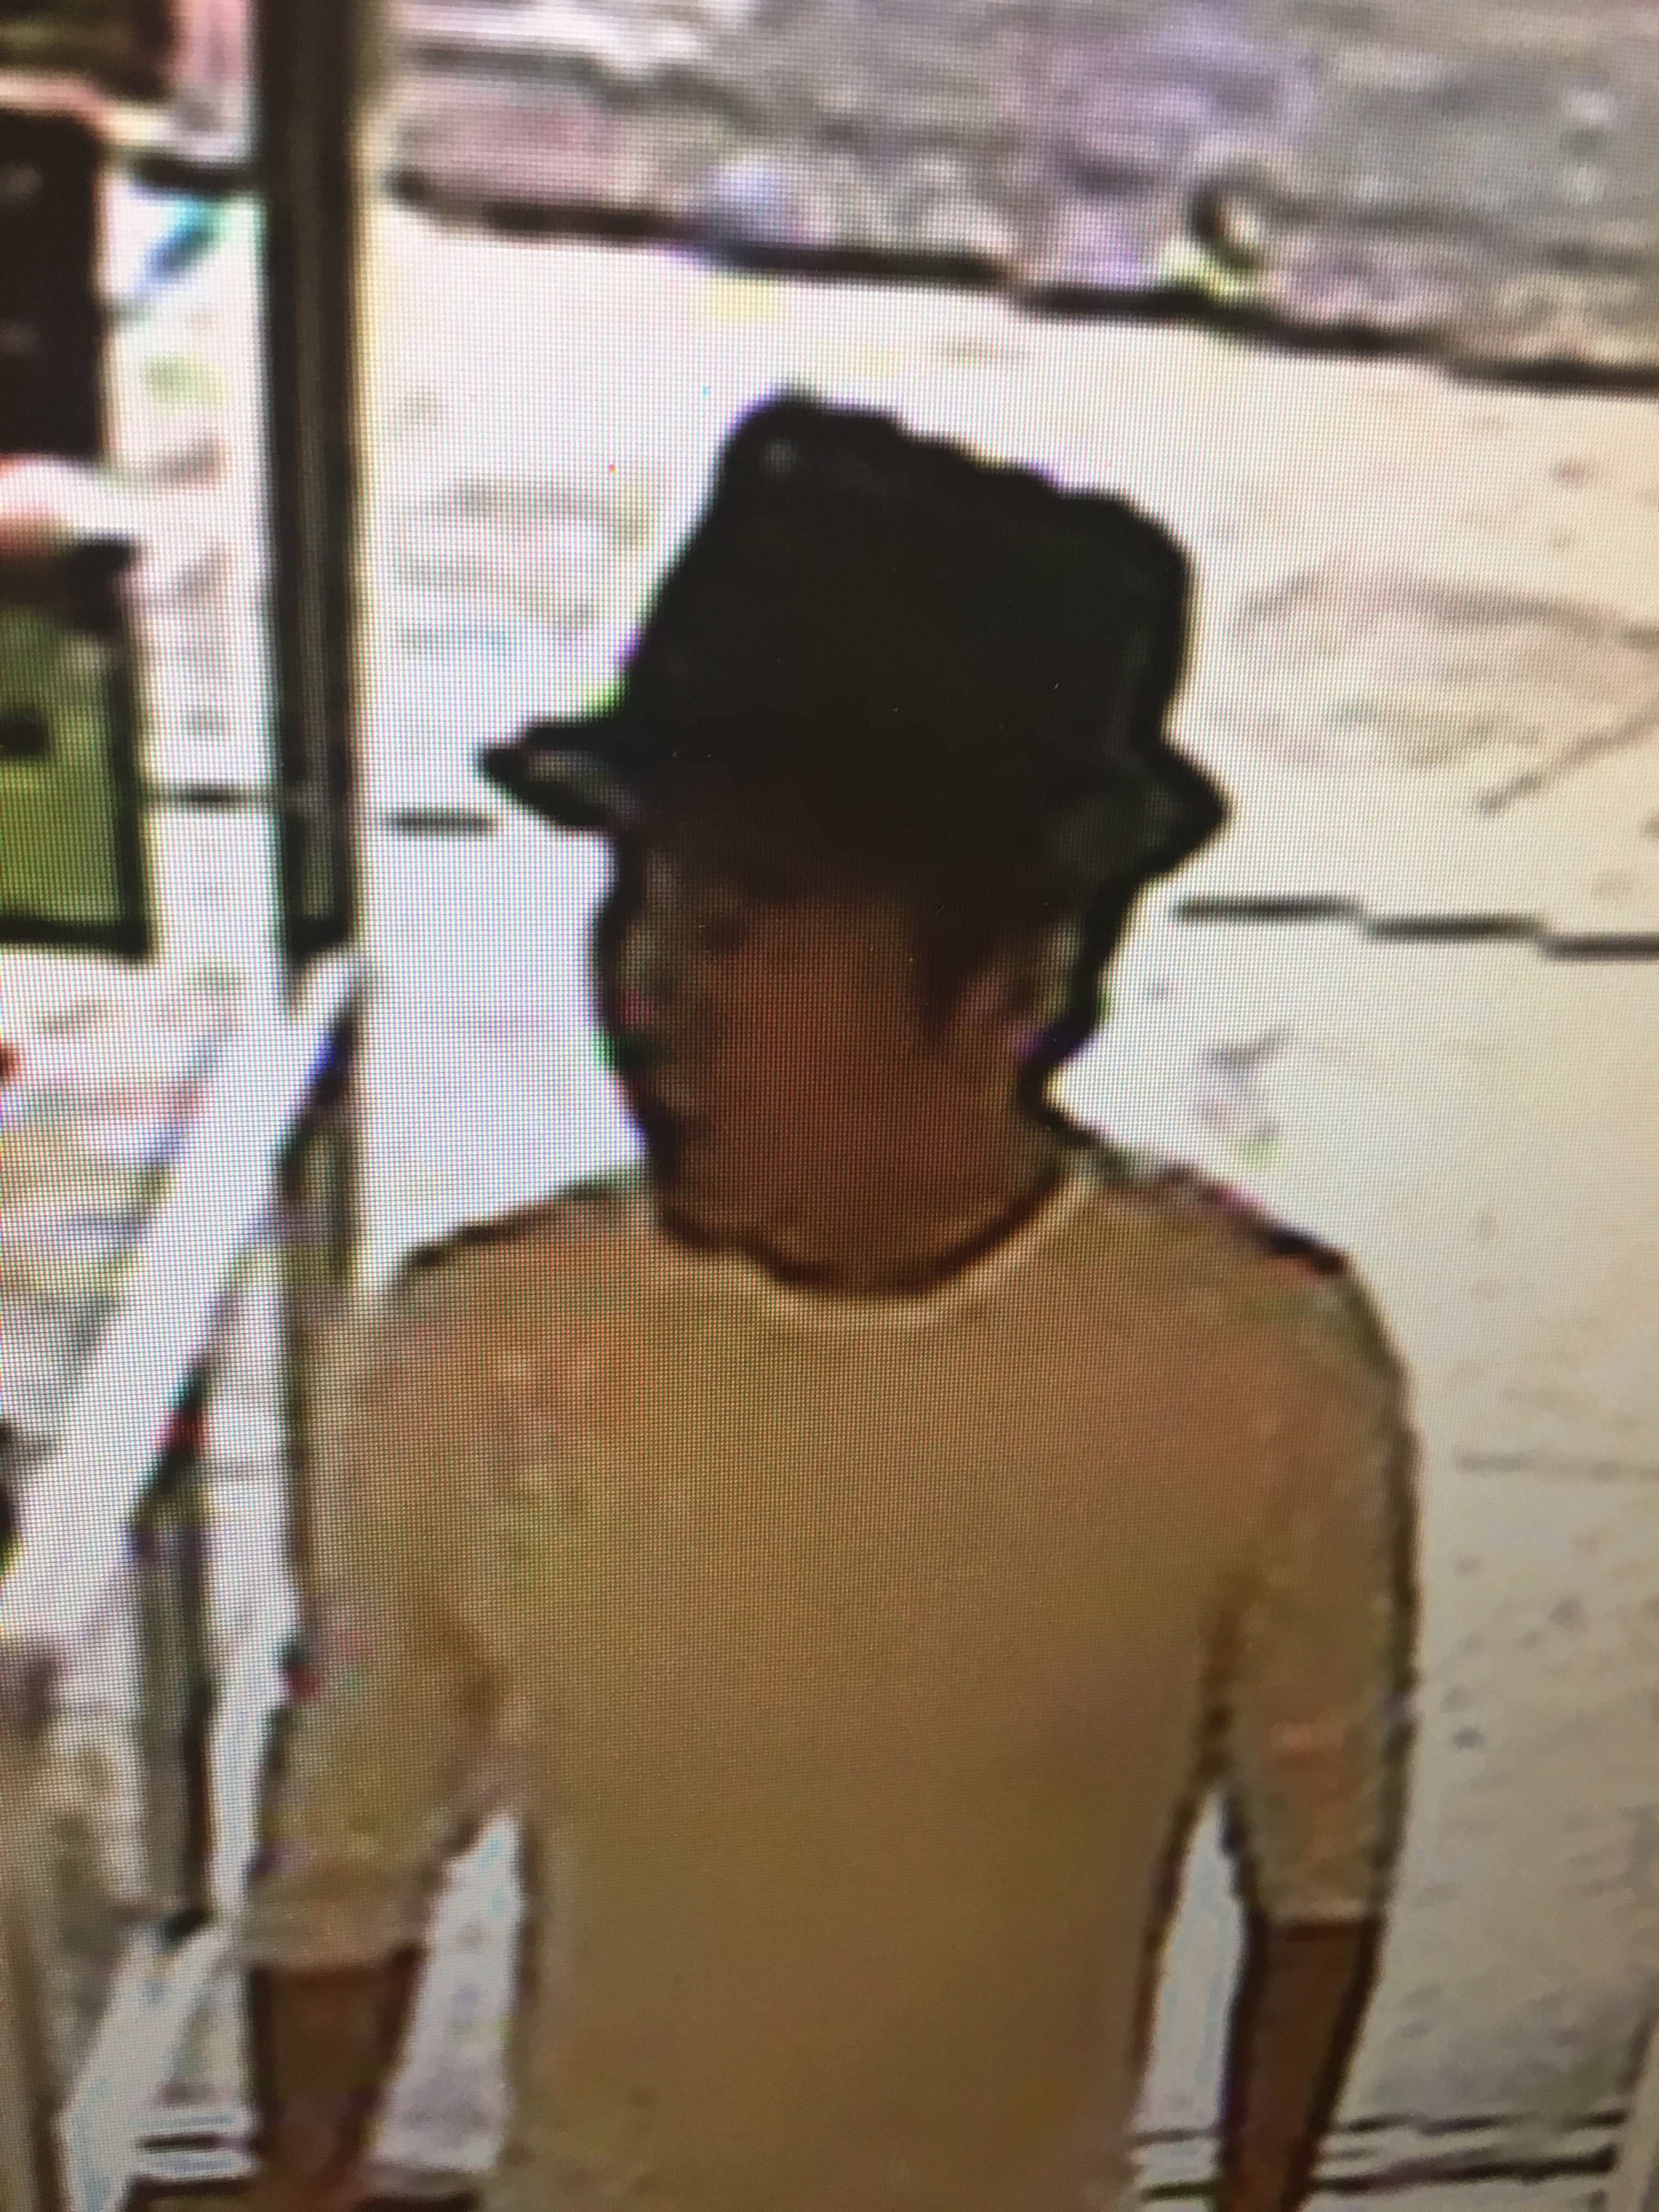 St. George Police released this photo showing a suspect wanted for questioning in an active police investigation, St. George, Utah, Sept. 21, 2016 | Photo courtesy of the St. George Police Department, St. George News